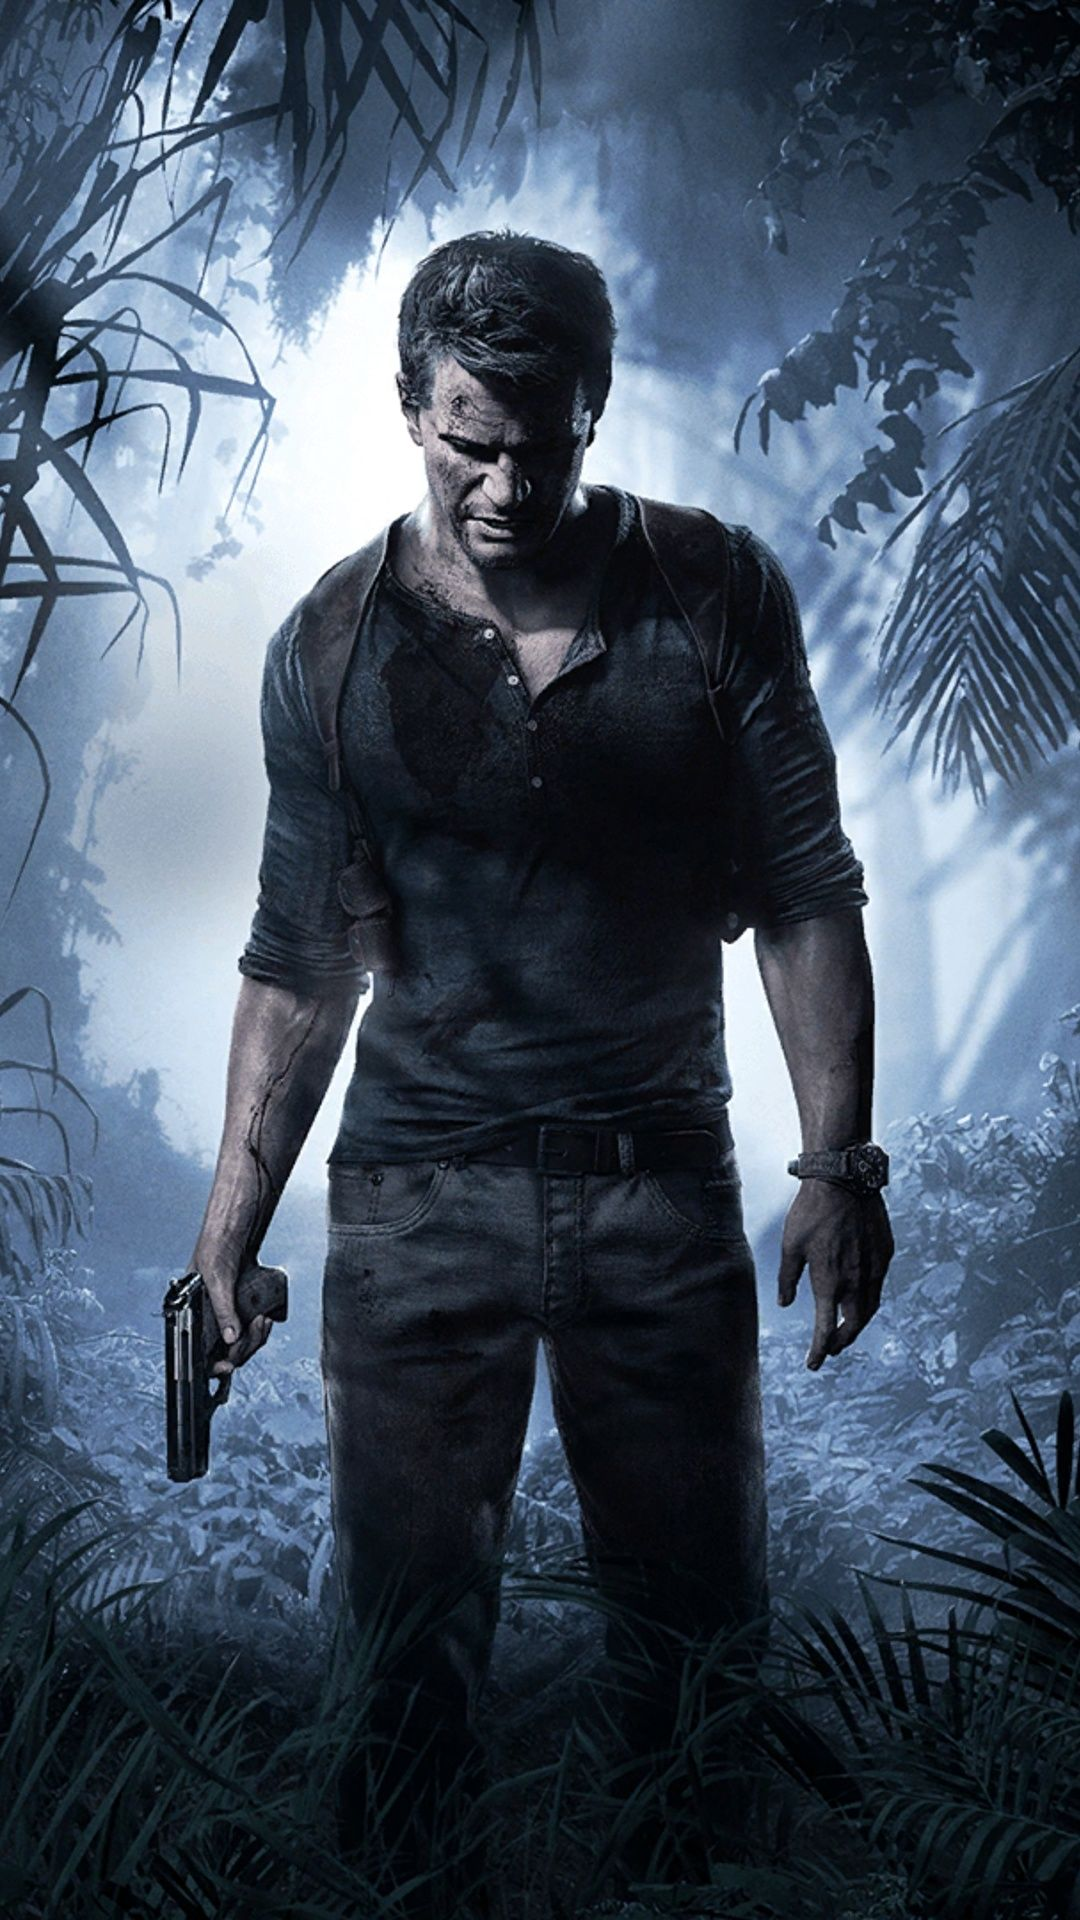 Uncharted 4 Wallpapers Iphone Background Hupages Download Iphone Wallpapers Uncharted Game Uncharted Uncharted Artwork